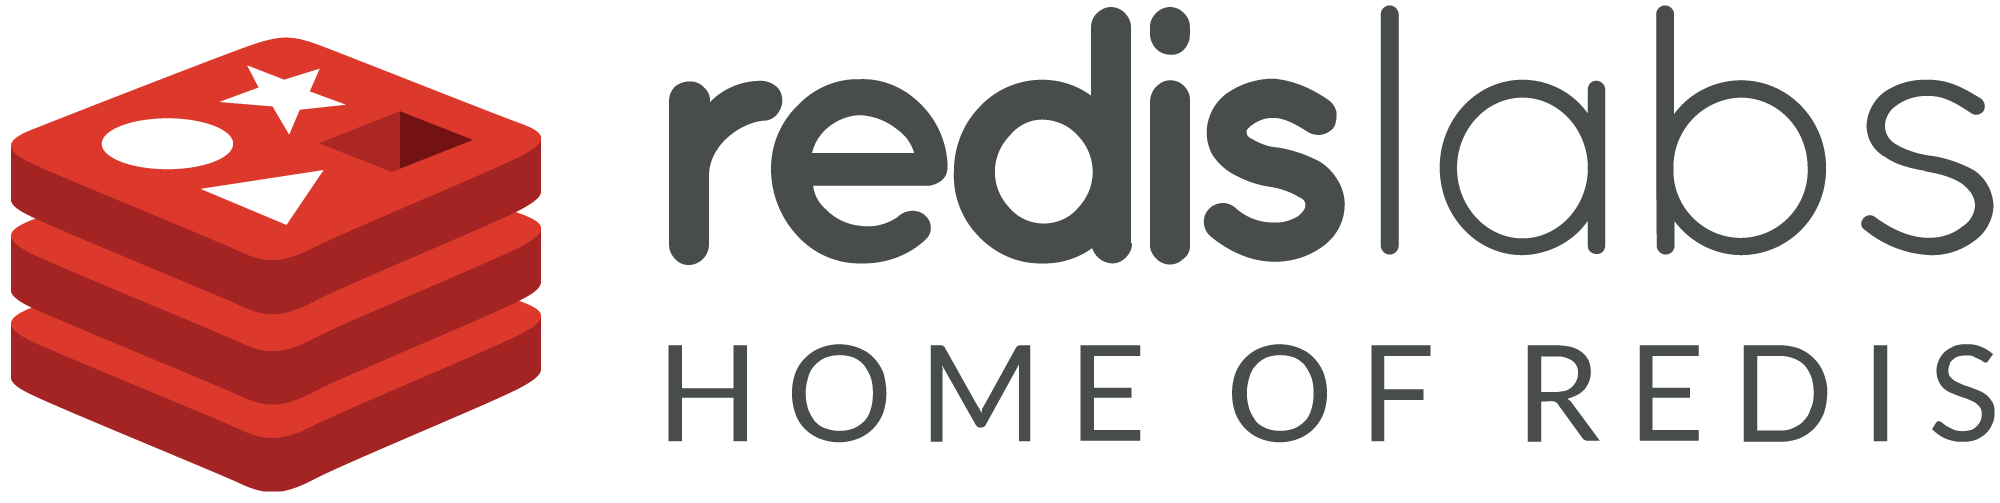 Redis Labs changes its open-source license — again Redis Labs changes its open-source license — again Redis labs logo 1